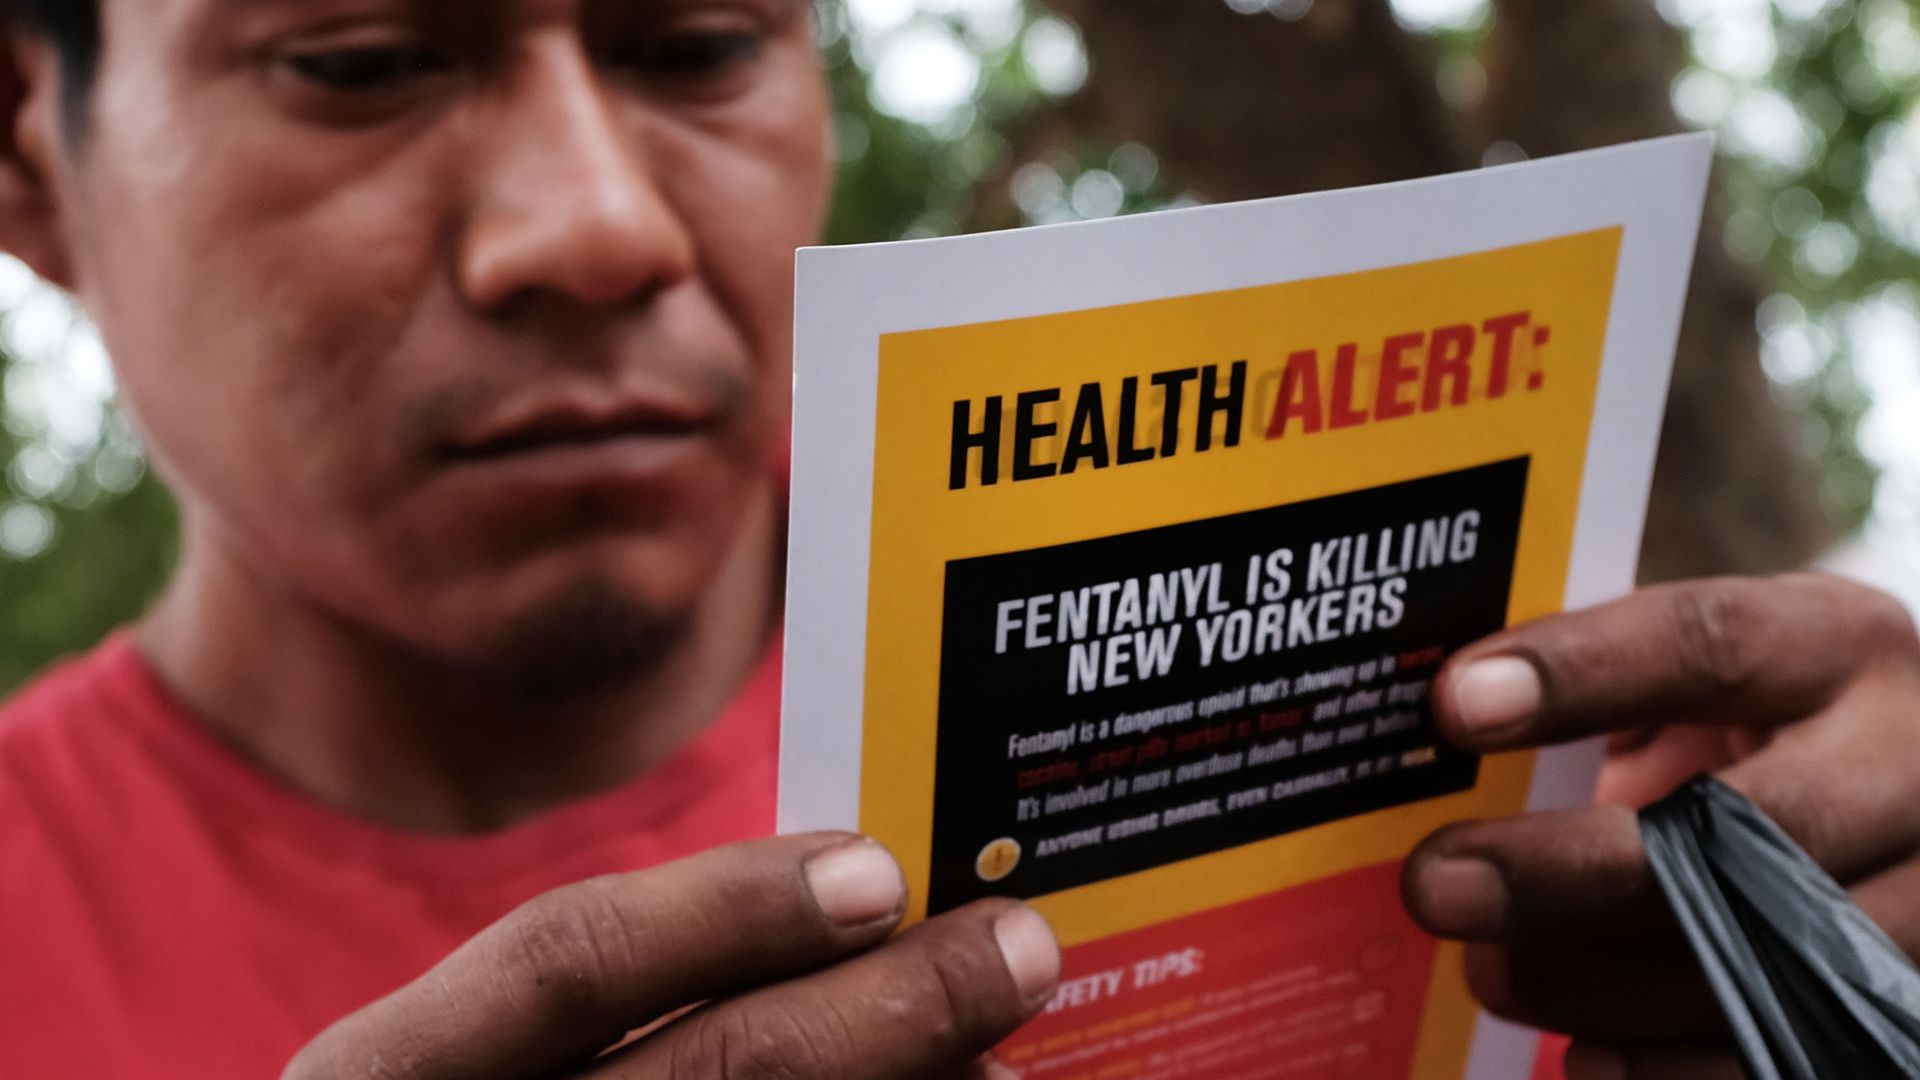 "In this image, a man holds up a poster that reads ""Health Alert: Fentanyl is killing New Yorkers"""